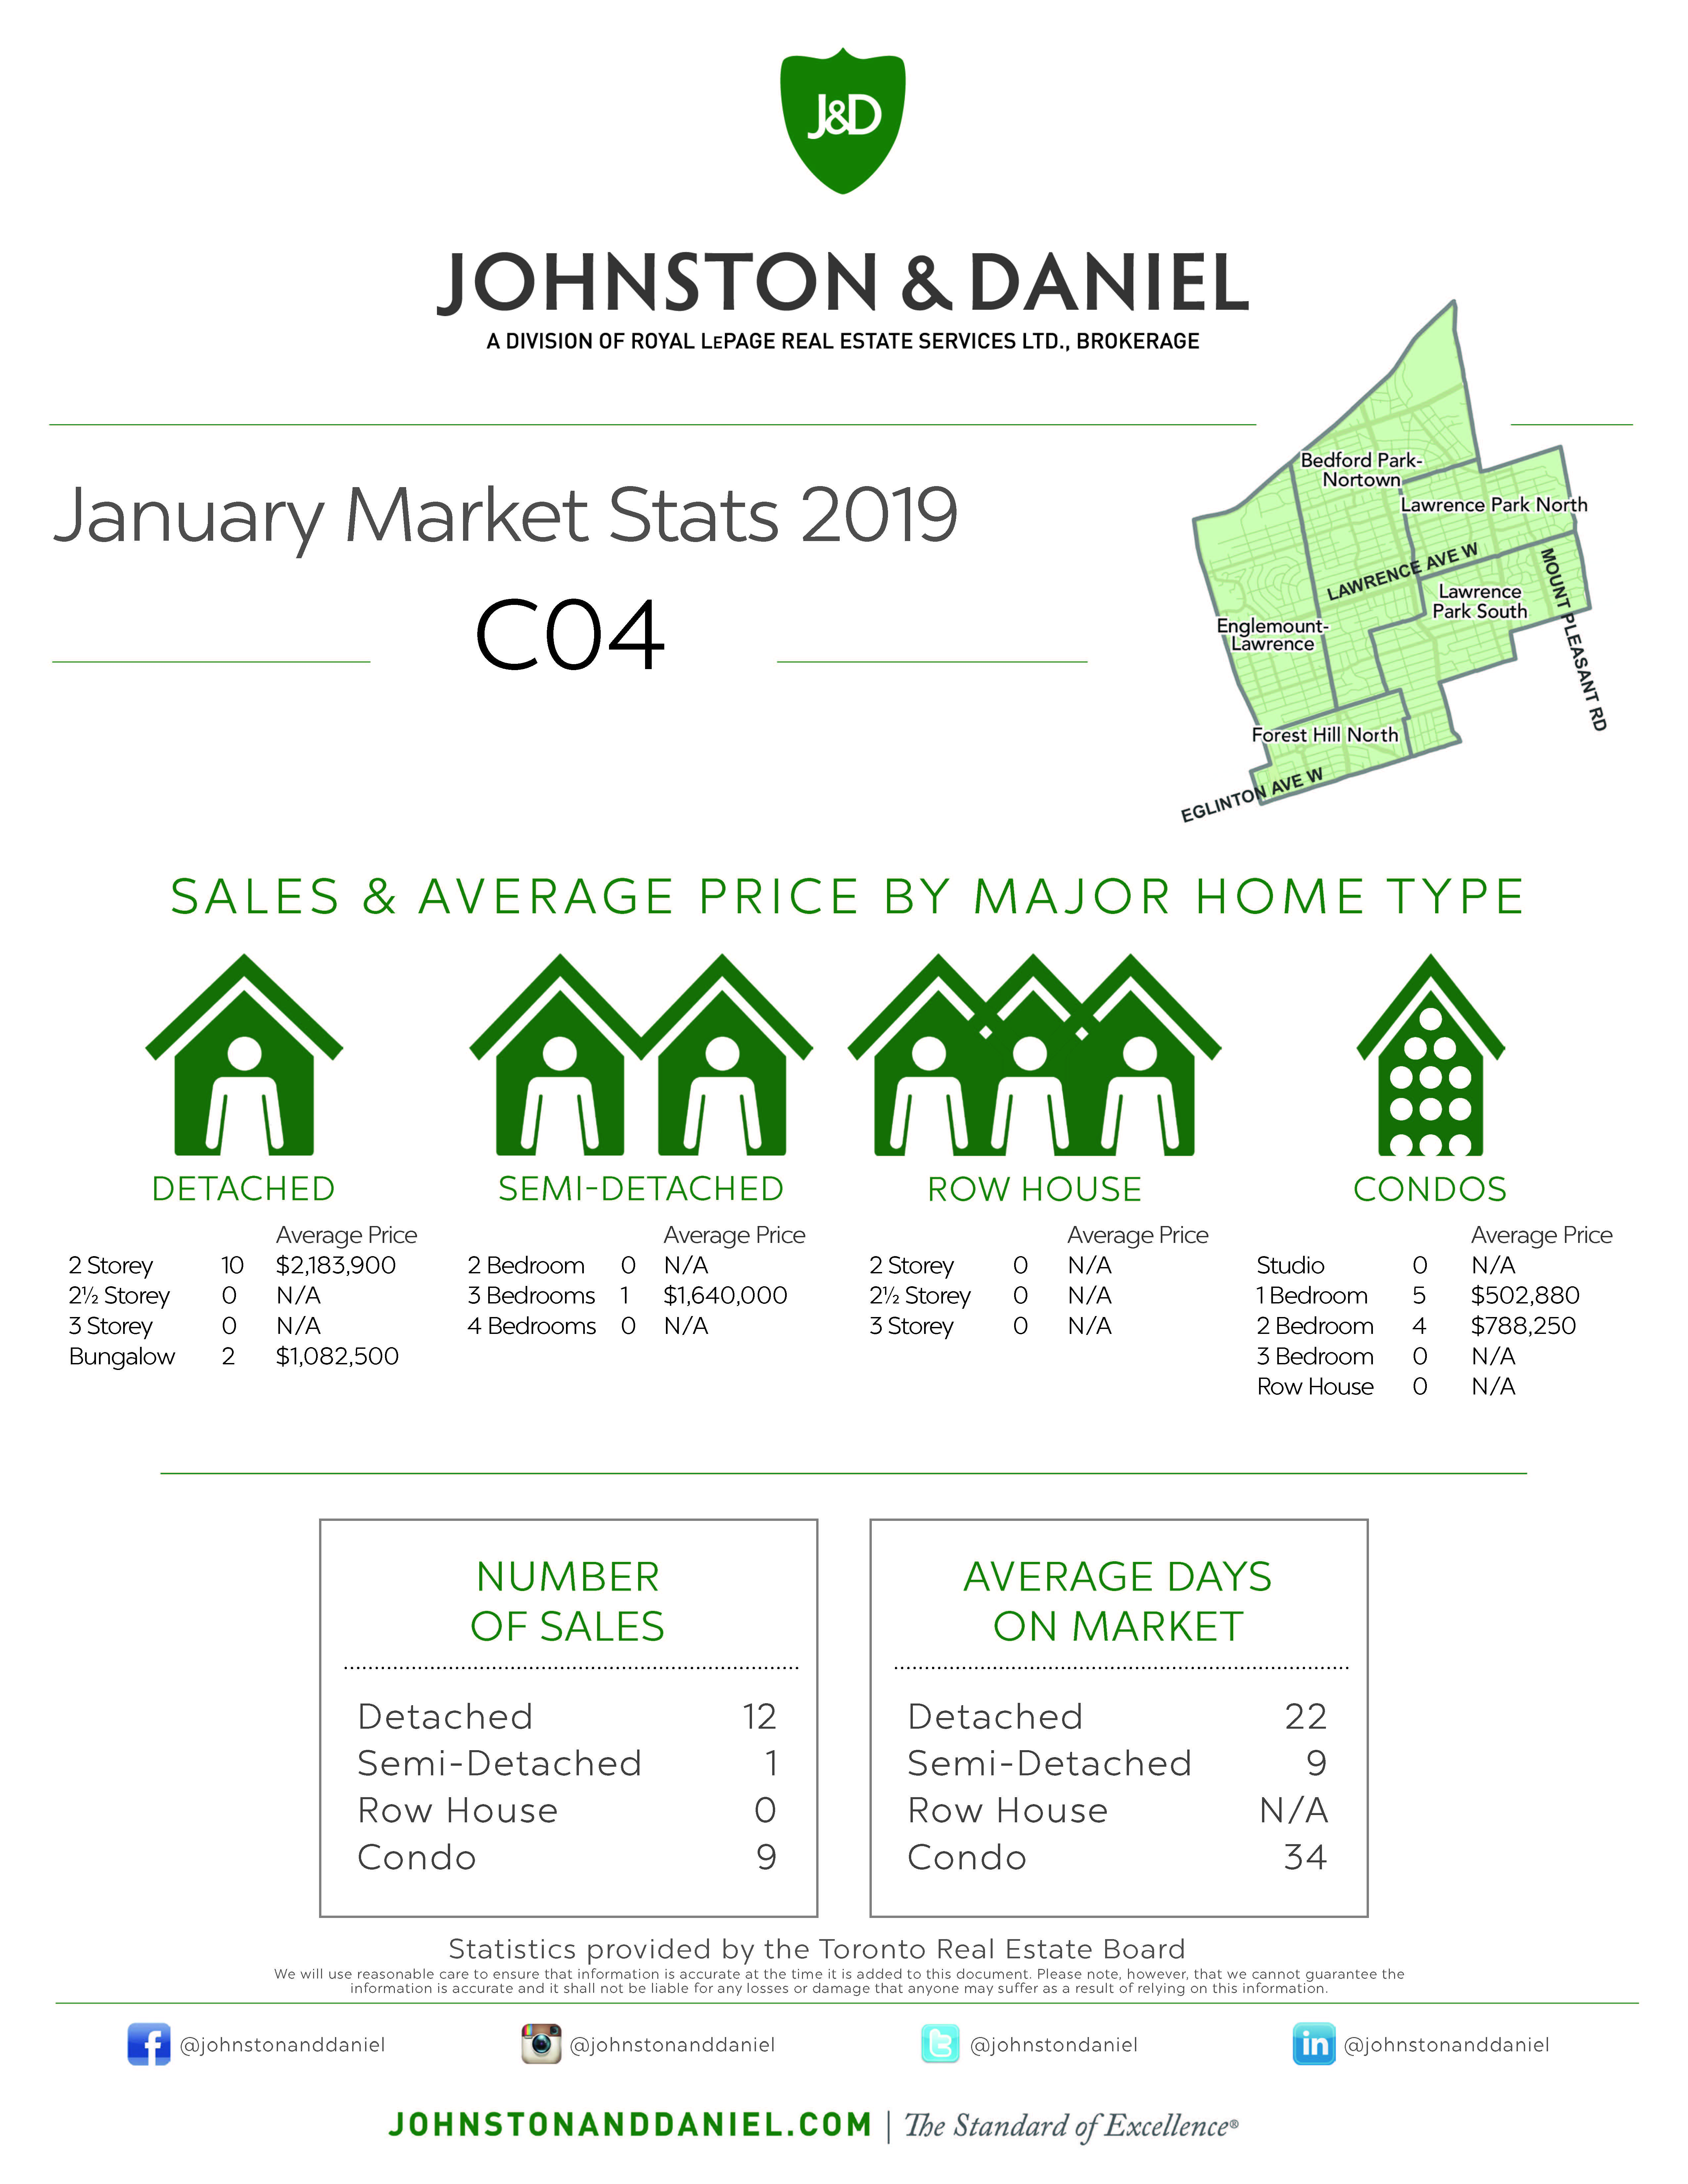 Toronto Real Estate Sales Statistics January 2019 for Area C04